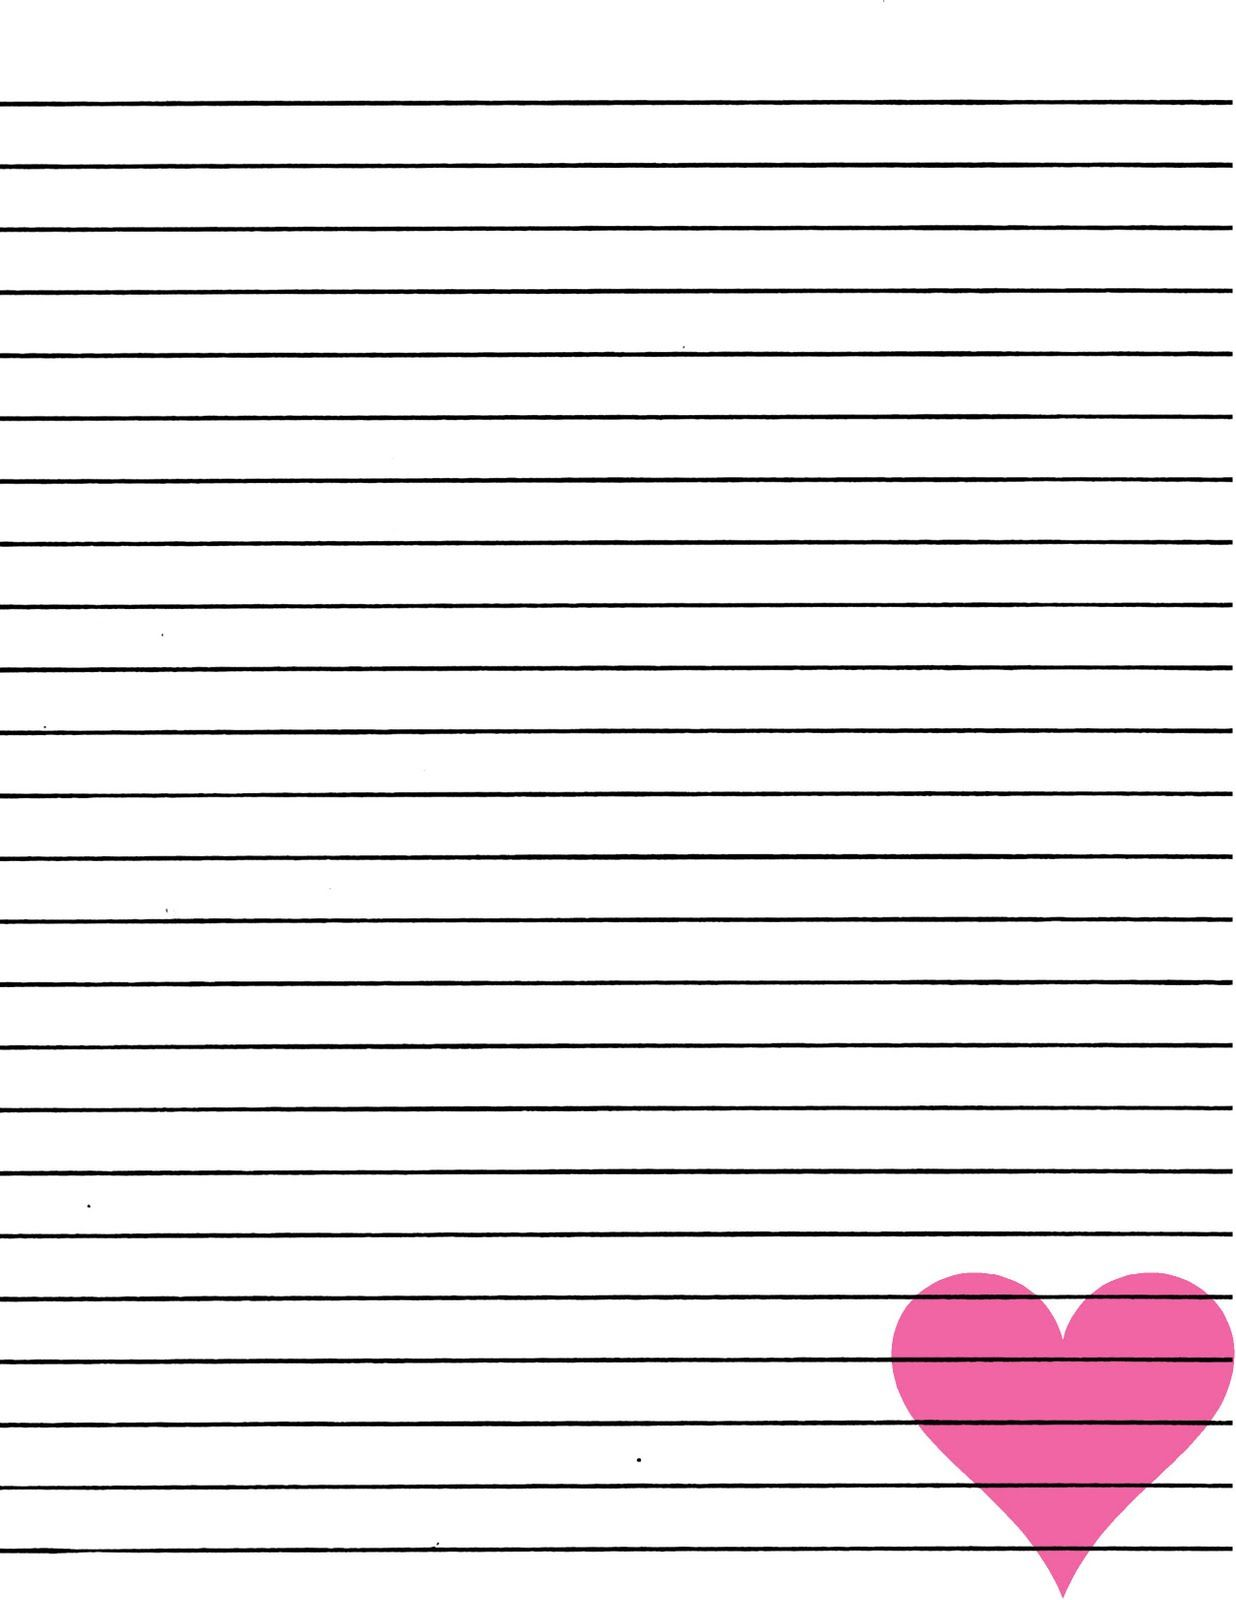 High Quality Pink Heart Lined Paper Printable! Regarding Free Lined Printable Paper